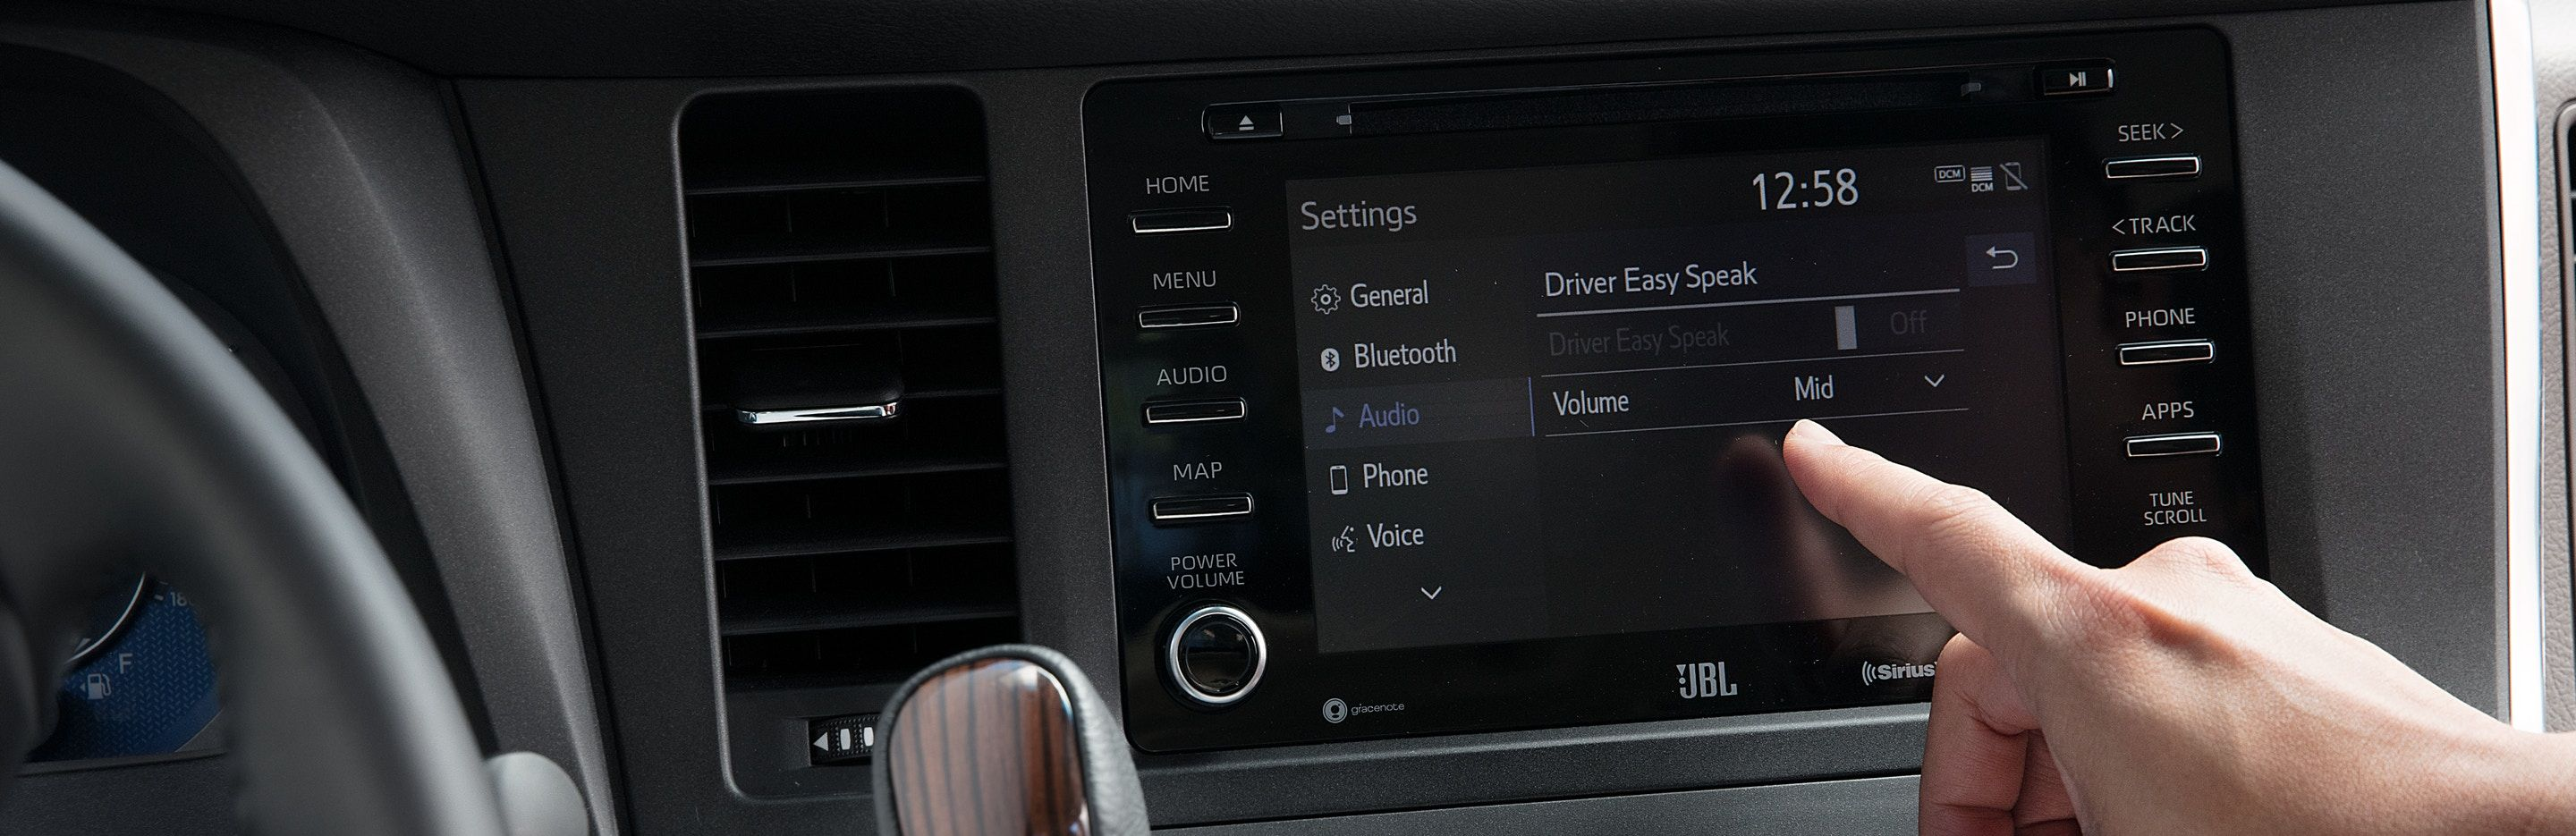 Driver Easy Speak in the Toyota Sienna